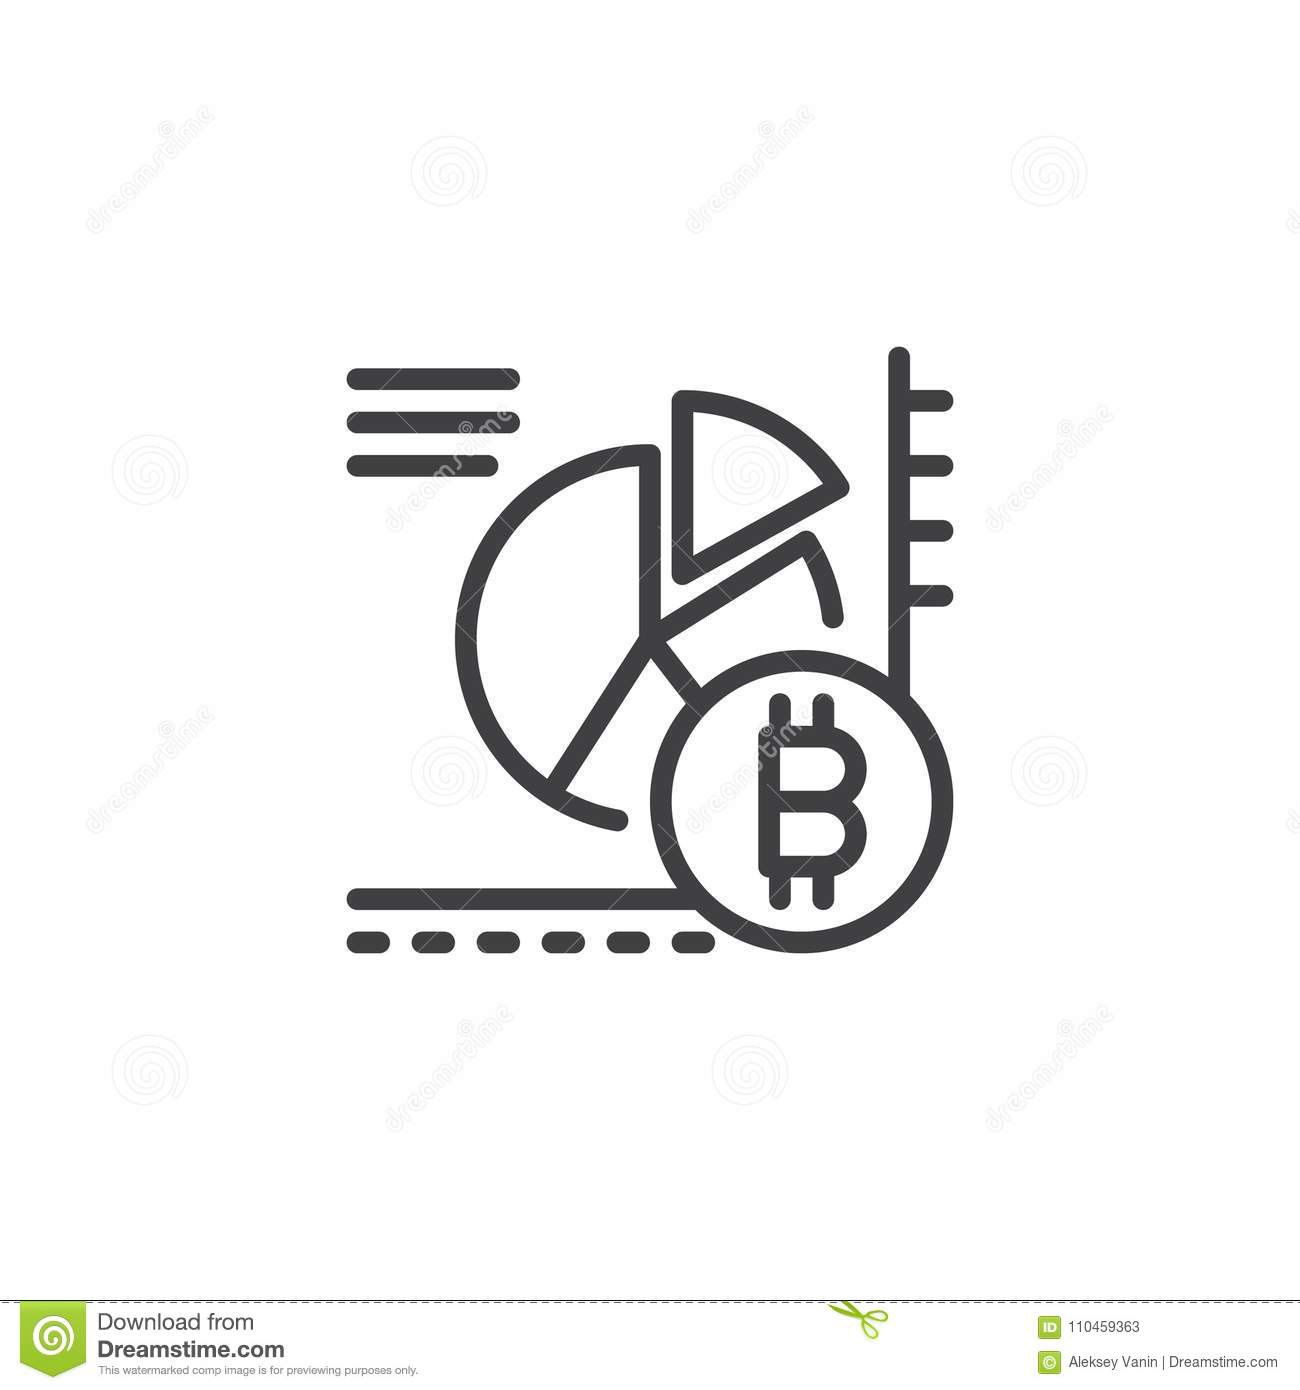 Bitcoin pie chart outline icon